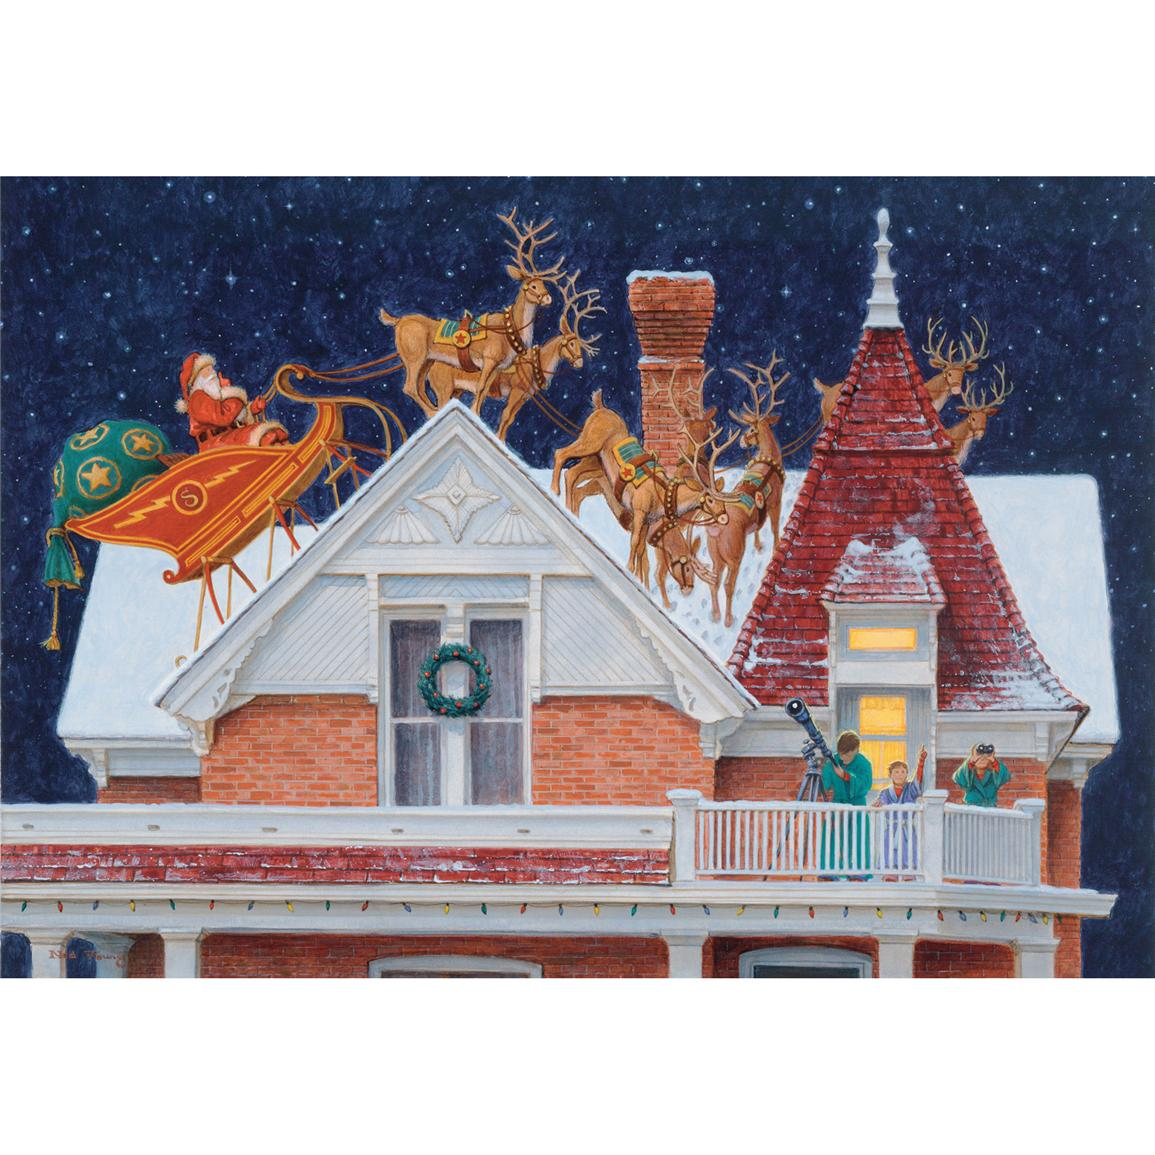 Roof Top Santa Floor Mat from the Wild Wings Collection®